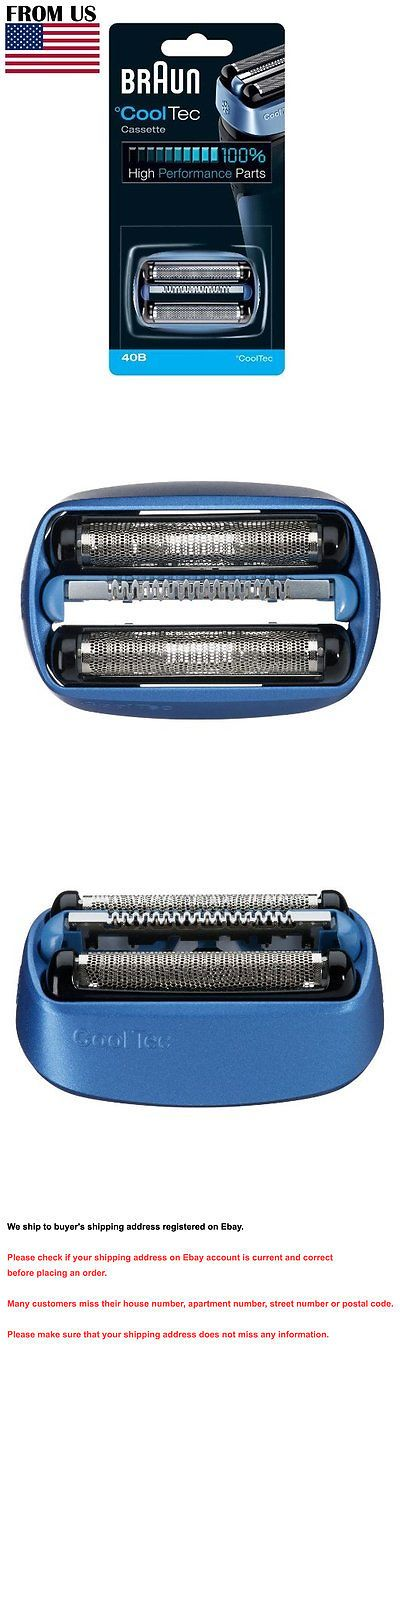 Shaver Parts and Accessories: 40B Braun Mens Shaver Cooltec Foil And Cutter Set Head Replacement Cassette -> BUY IT NOW ONLY: $30.2 on eBay!